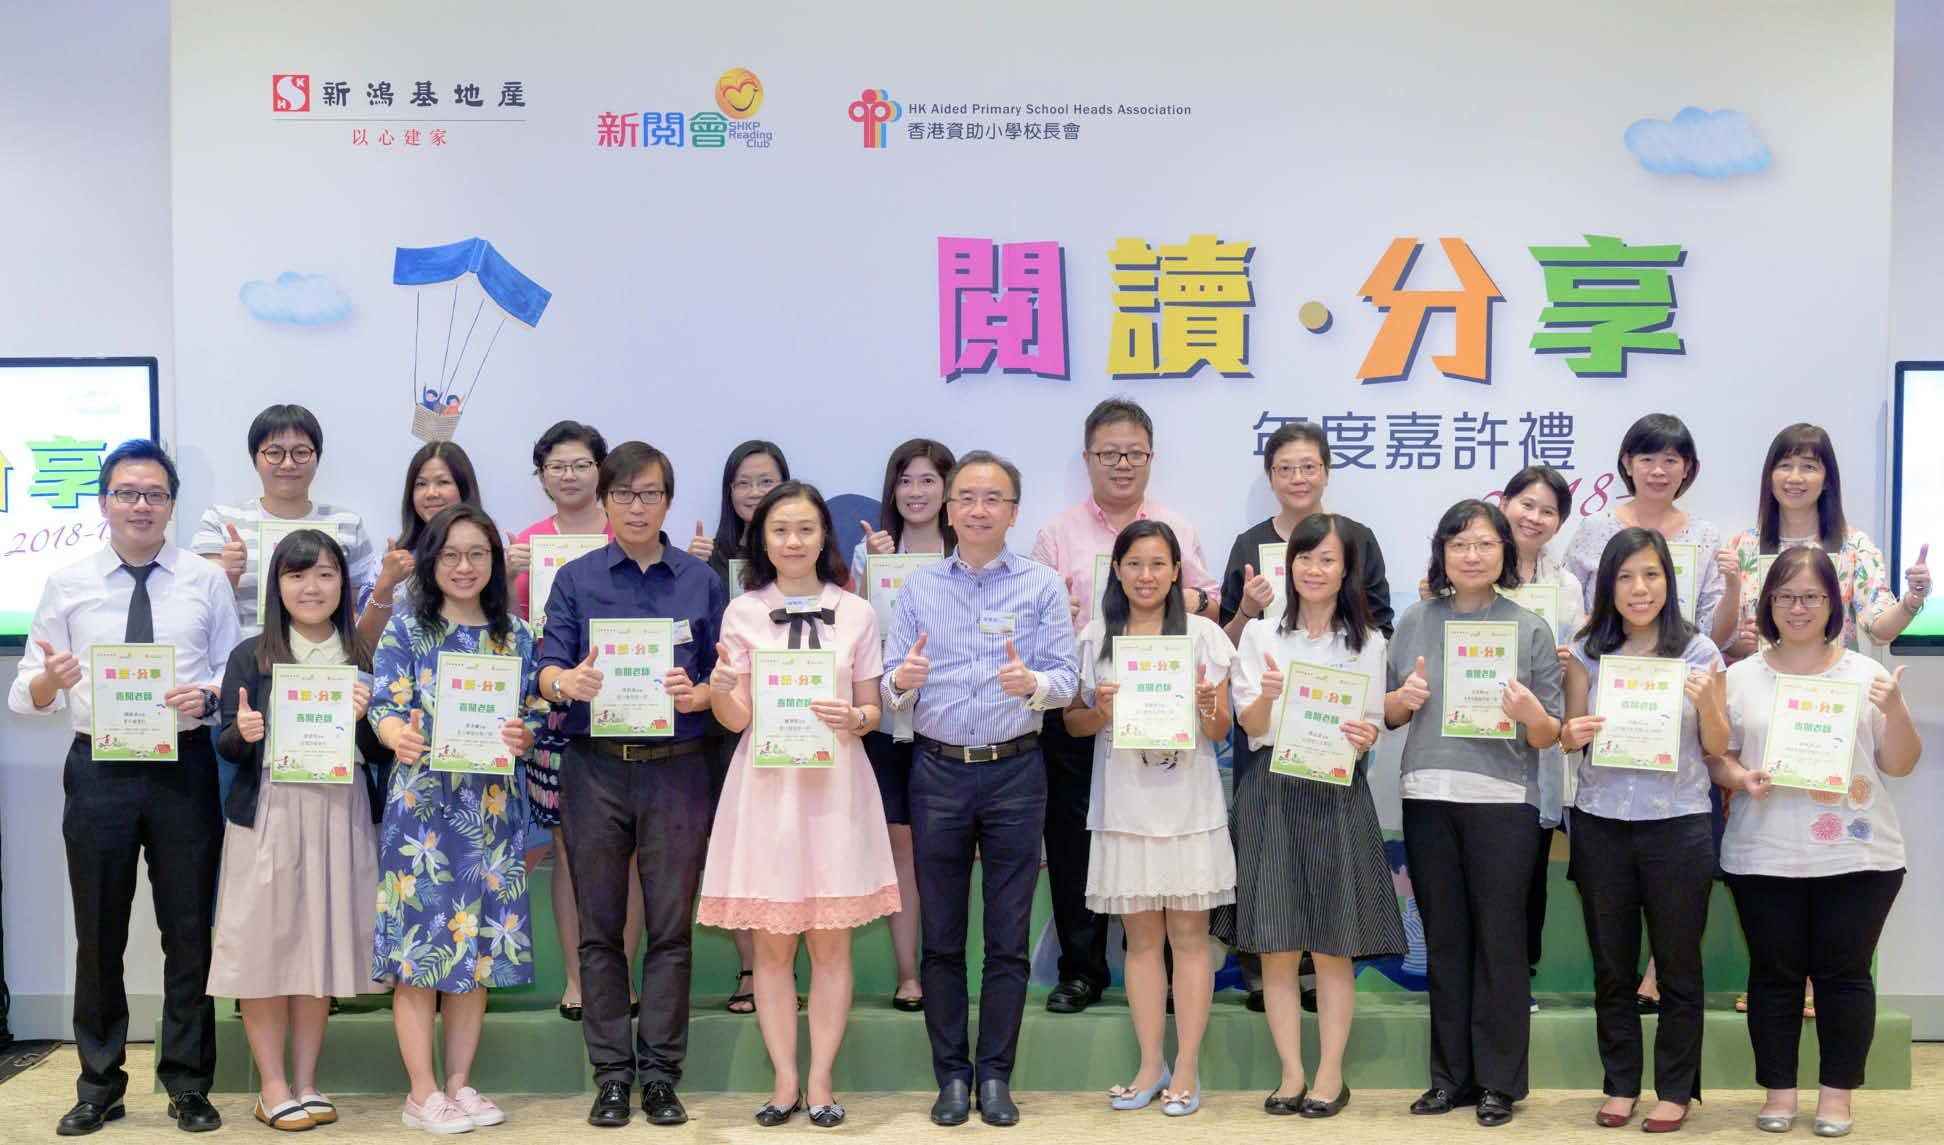 Teachers who won an Outstanding Performance Award receive an award certificate from HKAPSHA Chairman Cheung Yung-pong (front row, middle)